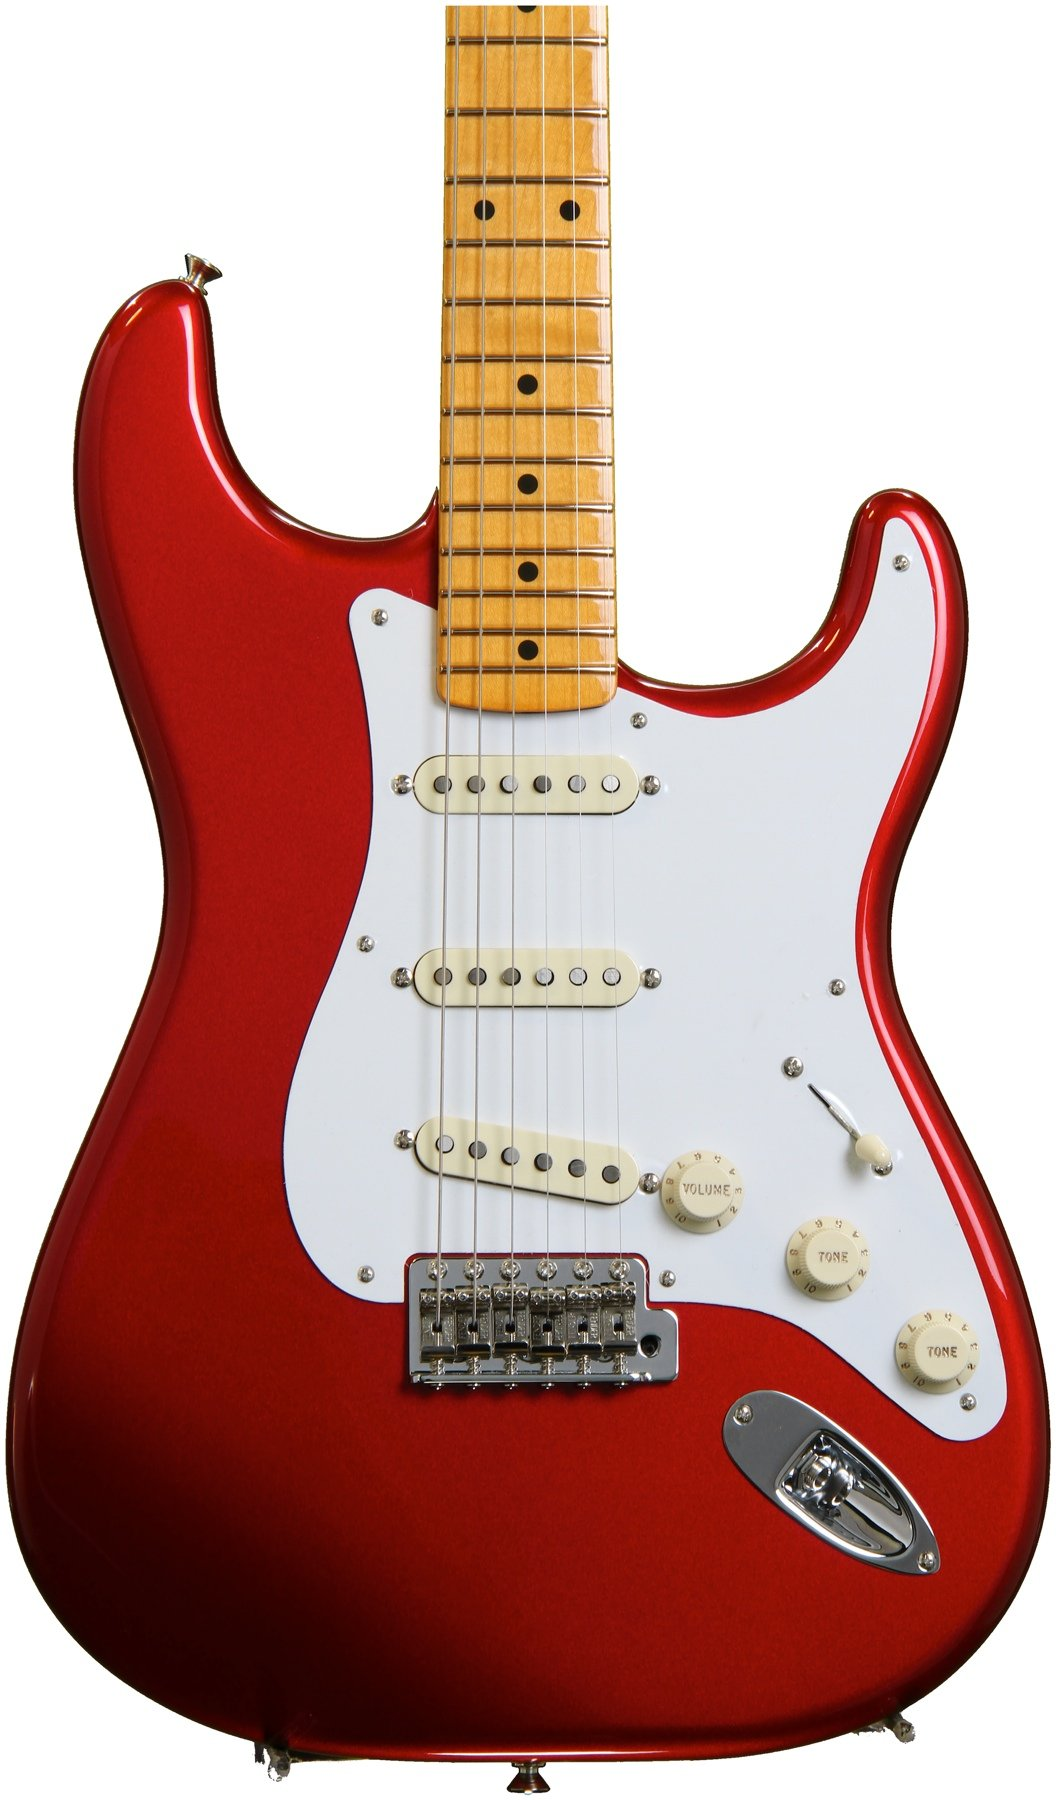 Unusual Reznor Wiring Diagram Thick Bulldog Security Remote Starter With Keyless Entry Shaped Alarm Wiring 3 Humbuckers Old Bulldog Security Keyless Entry YellowRemote Start Diagram Fender Classic Series \u002750s Stratocaster, Lacquer   Candy Apple Red ..